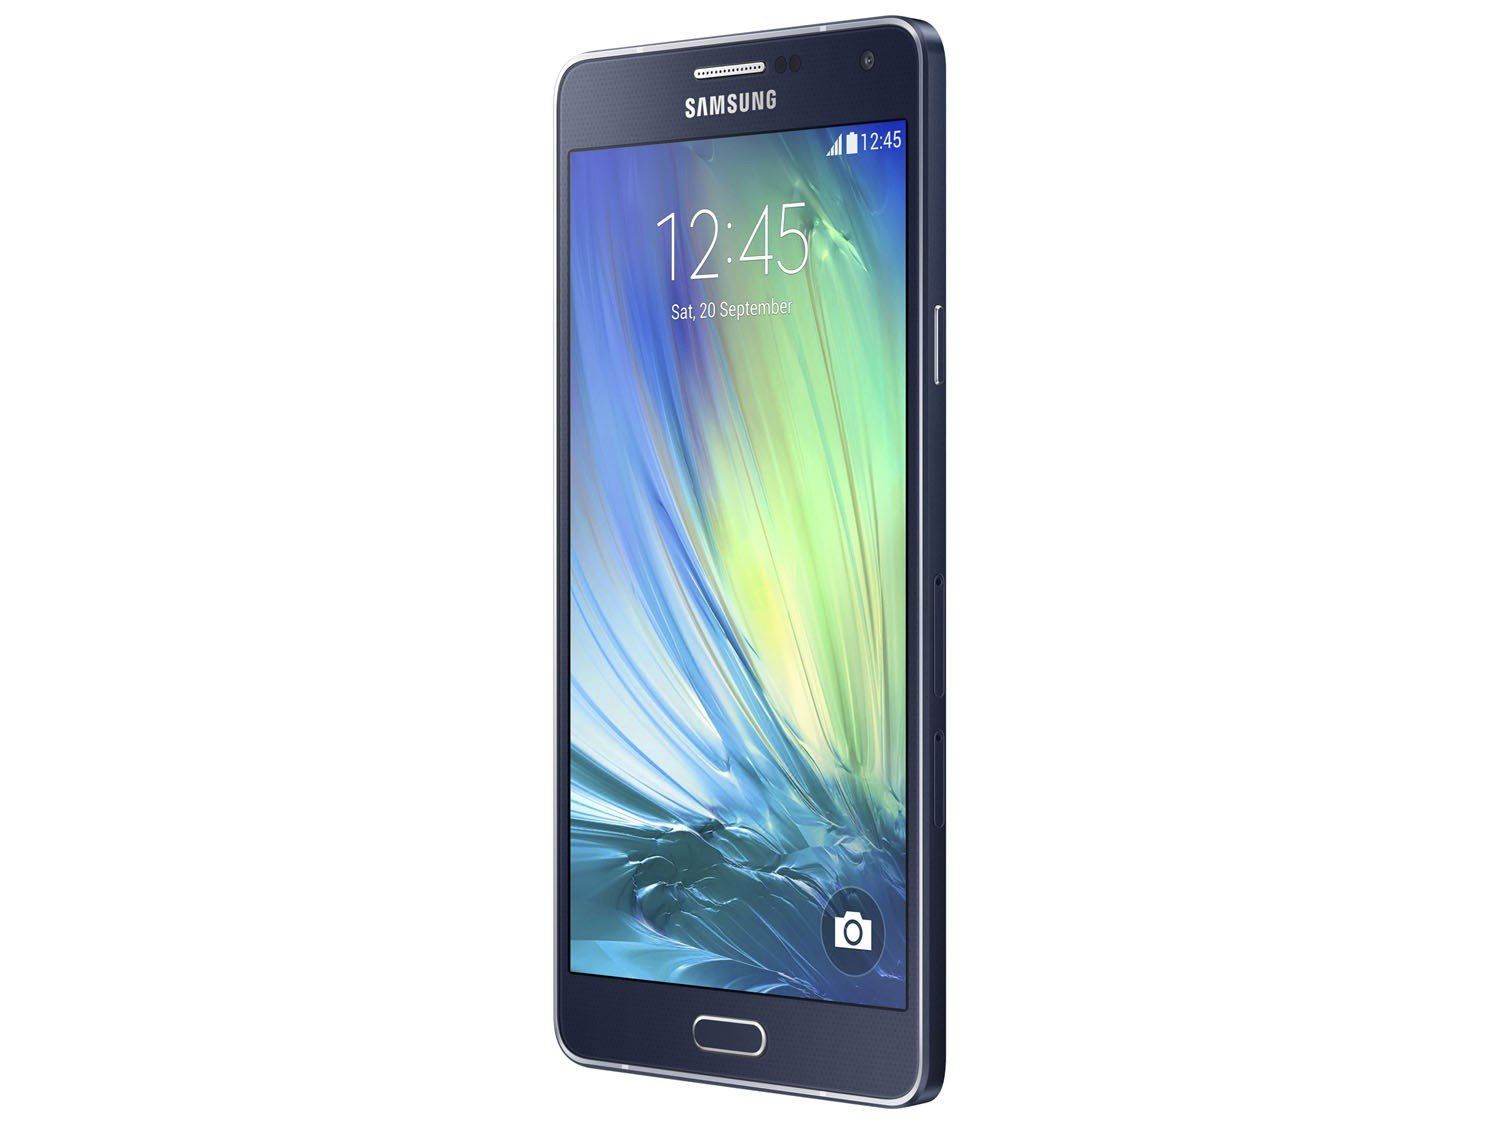 smartphone-samsung-galaxy-a7-duos-dual-chip-4g-android-4.4-cam.-13mp-tela-5.5-proc.-octa-core